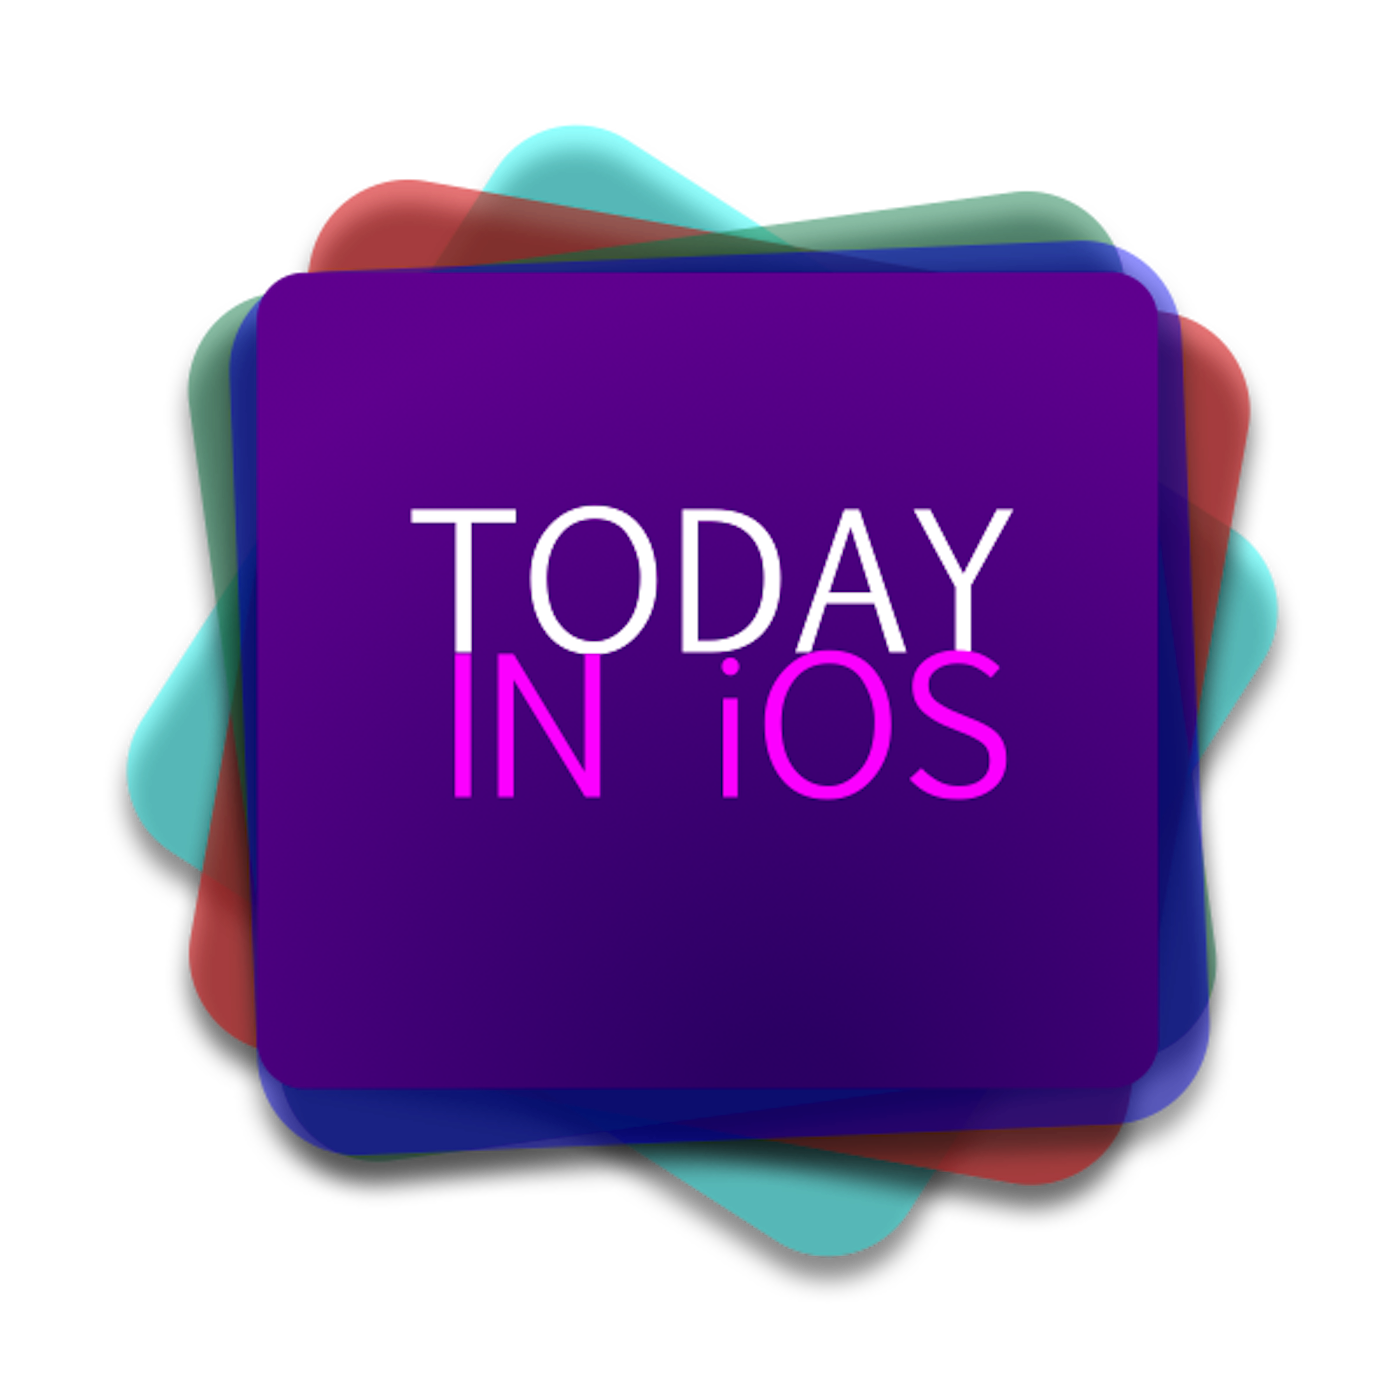 iPodder org :: Today in iOS Podcast - The Unofficial iOS